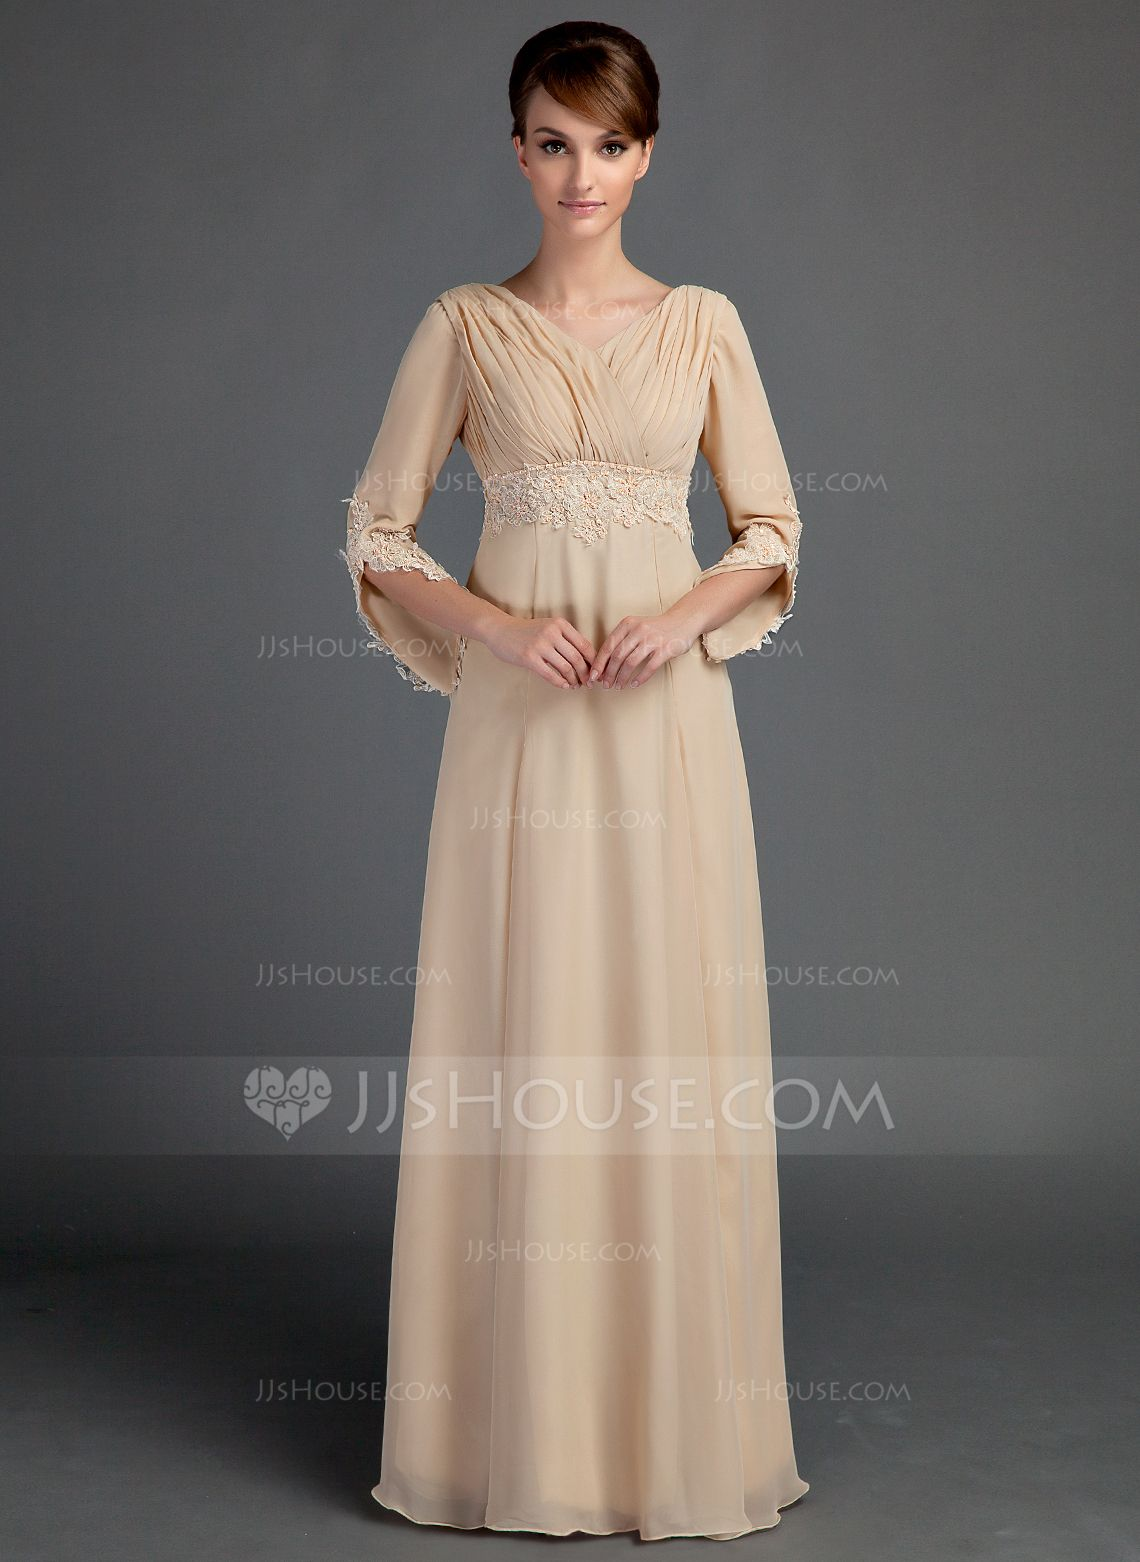 c2cd5c4c18 Empire V-neck Floor-Length Ruffle Lace Beading Zipper Up Sleeves 3 4  Sleeves No Champagne General Plus Chiffon Mother of the Bride Dress